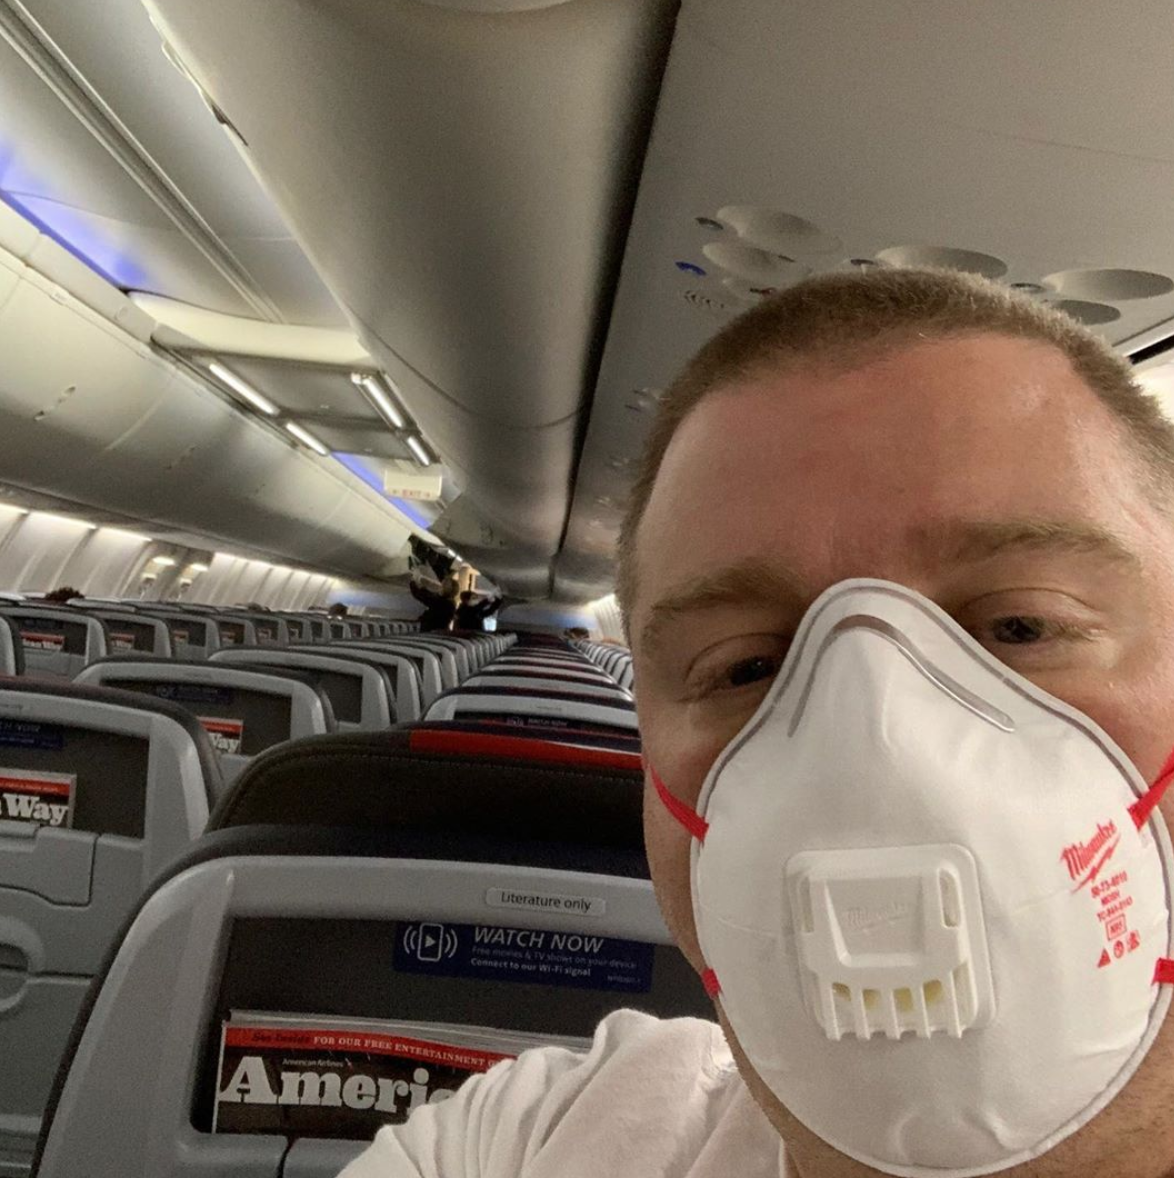 Jim Mullen on empty plane in mask